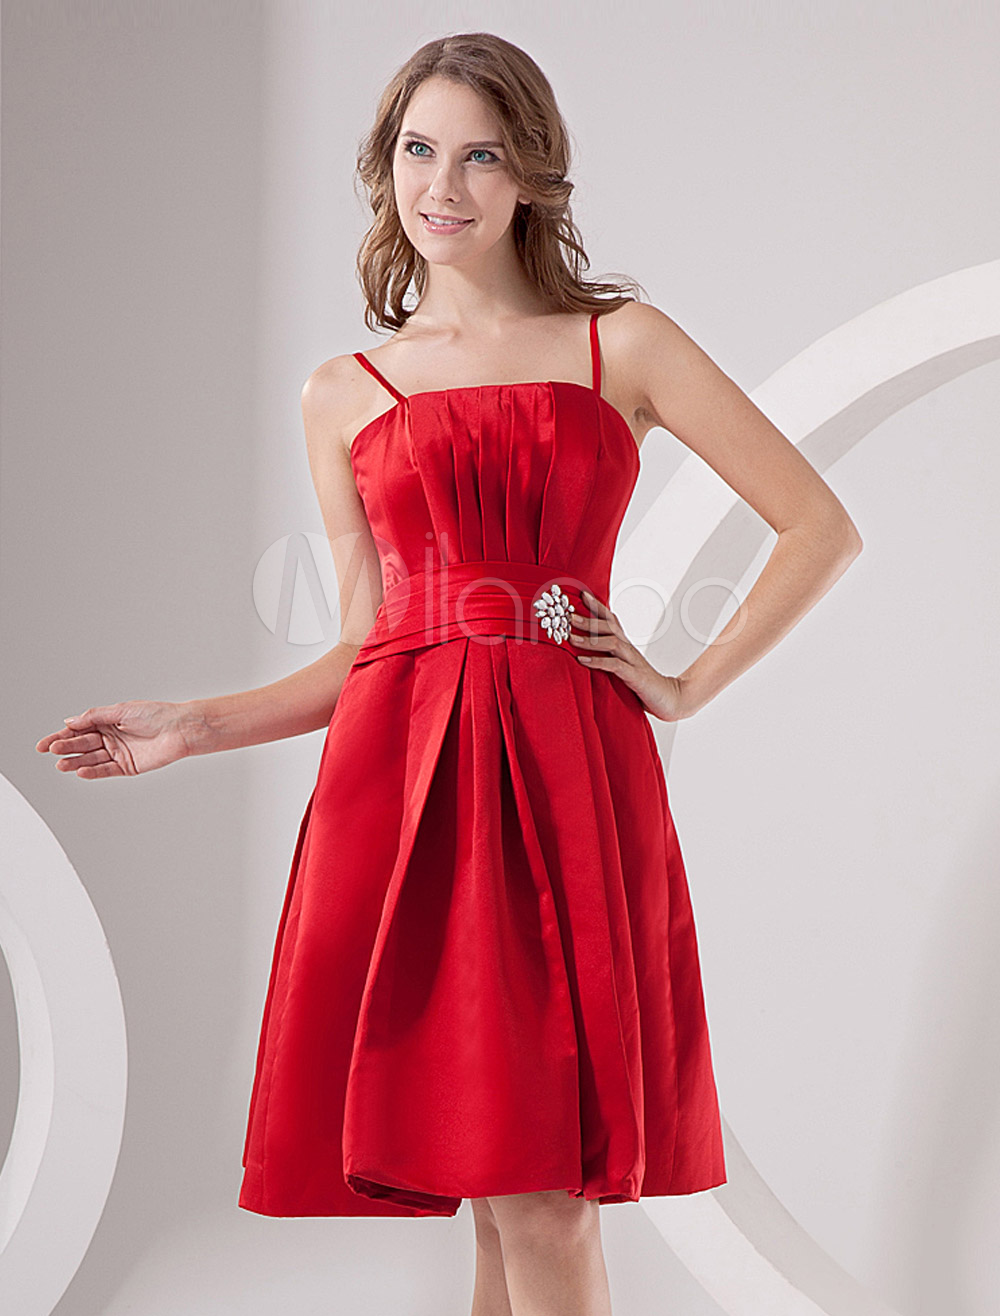 China Wholesale Dresses - Red Satin Empire Waist Strapless Homecoming Dress